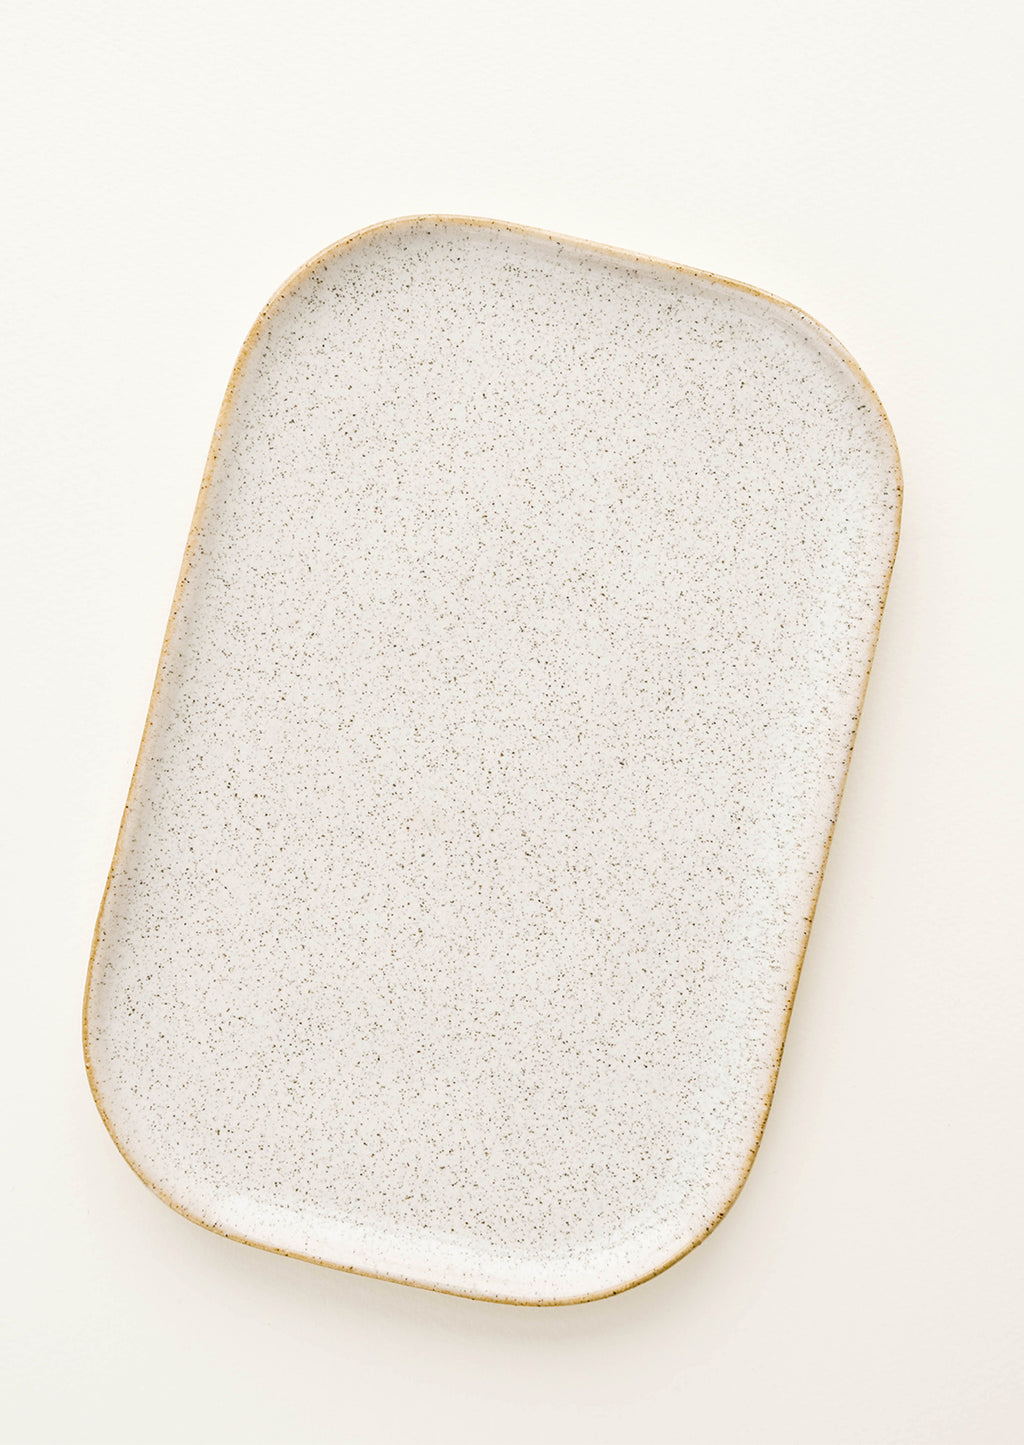 3: Glossy white ceramic tray with brown speckles.